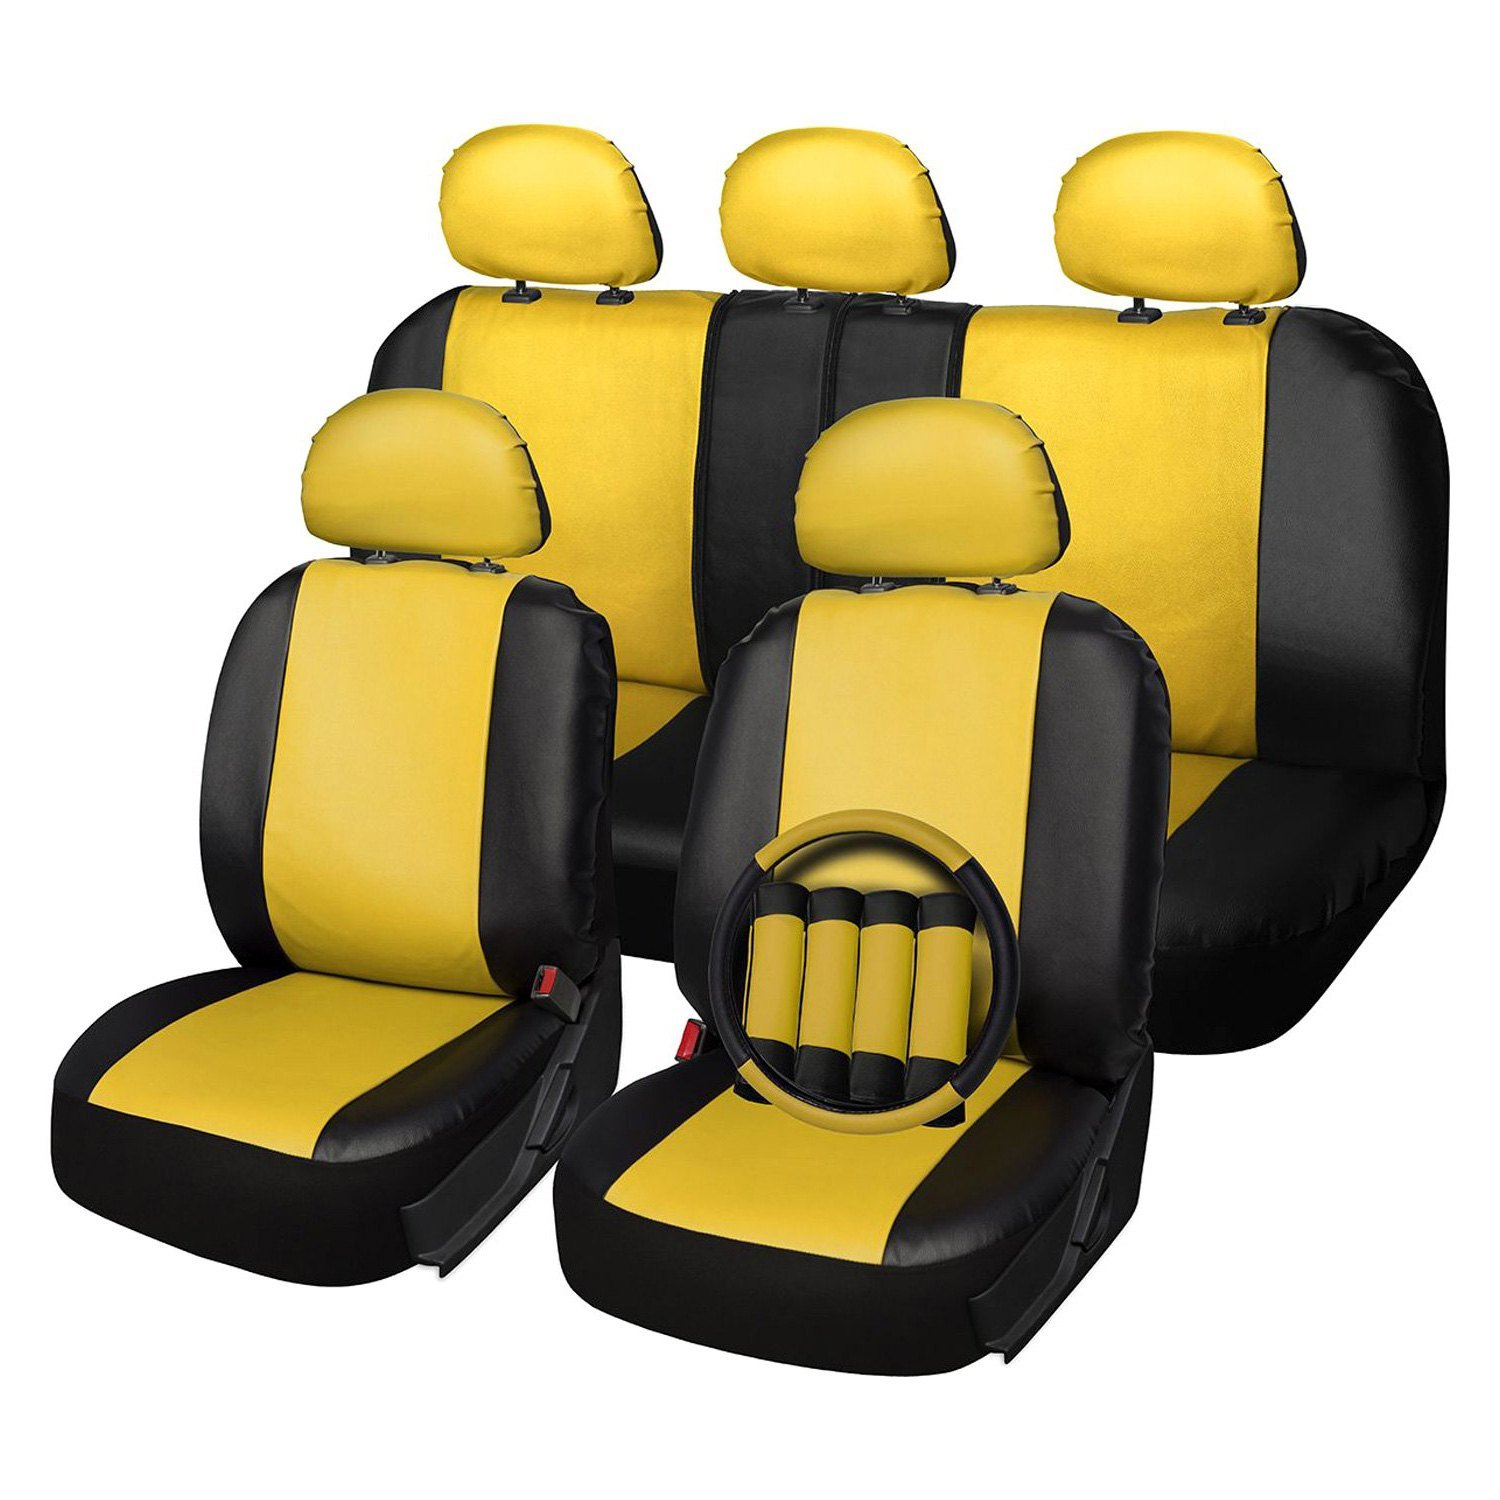 Miraculous Oxgord Scpu S2A Yw Faux Leather 1St 2Nd Row Yellow Black Seat Cover Set Gmtry Best Dining Table And Chair Ideas Images Gmtryco